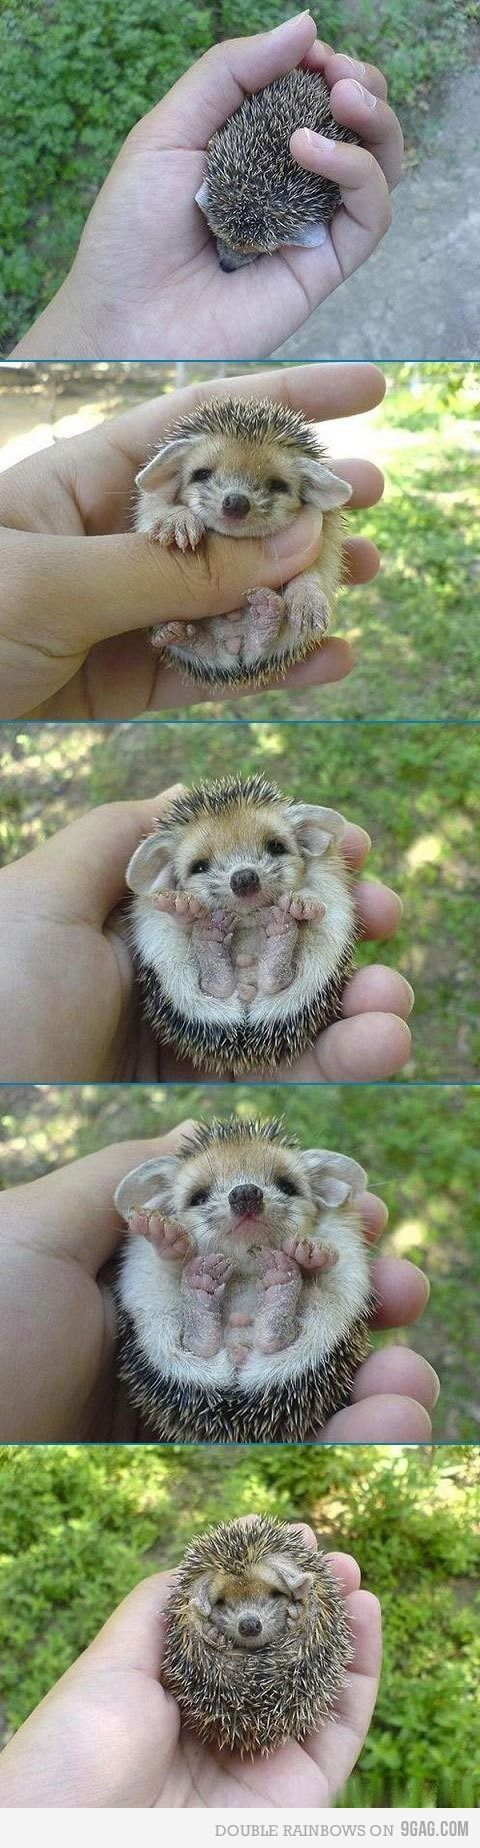 """""""I can haz baby hedgehog?""""  I want another hedgie so badly! WH are they illegal in PA?!?"""